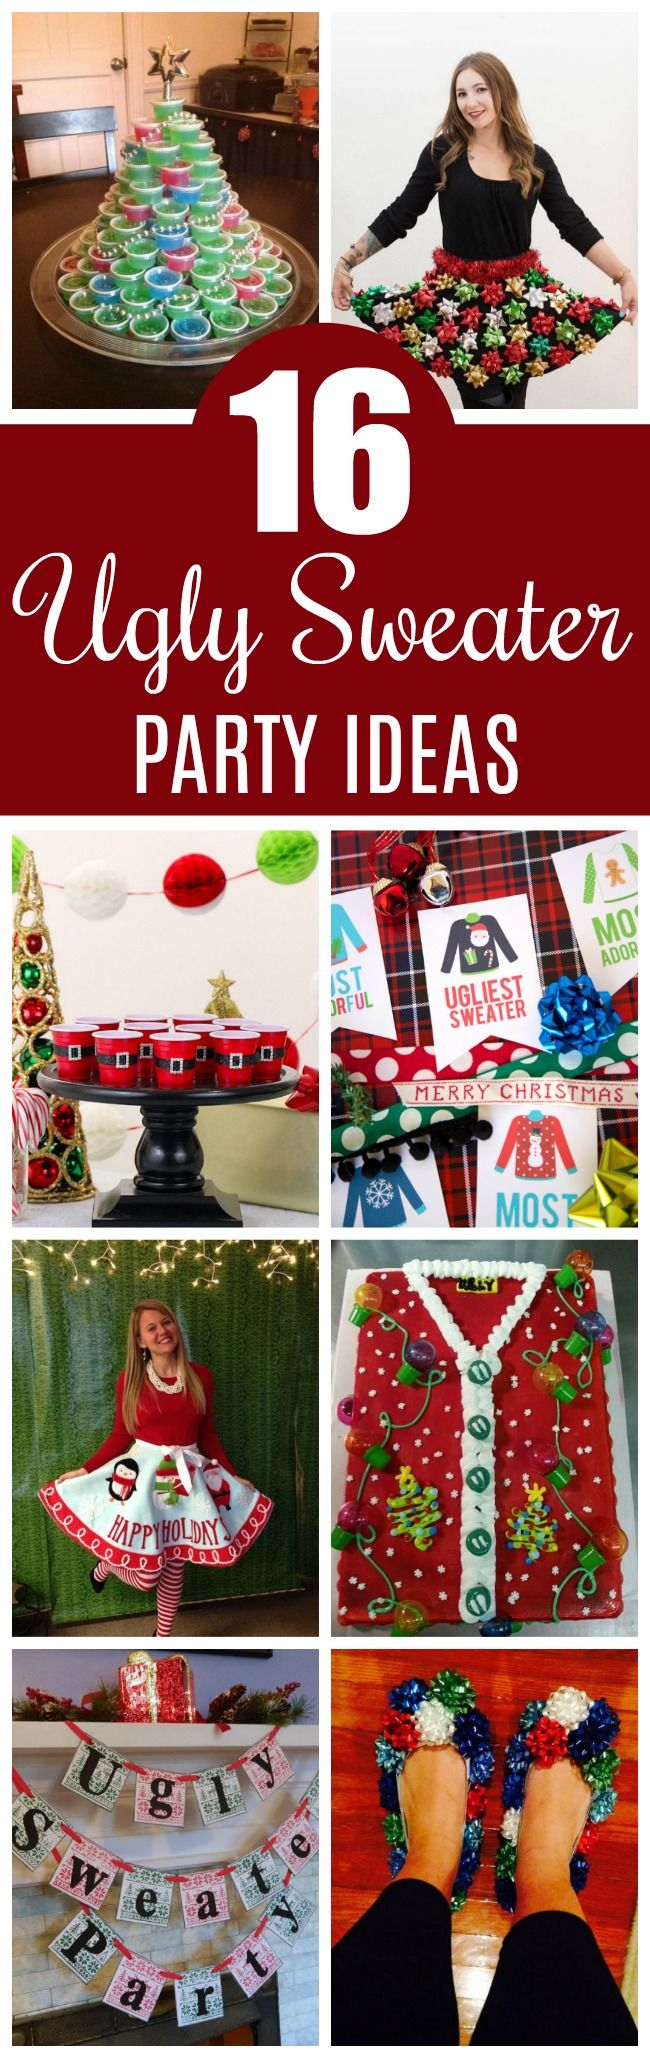 Charming Tacky Christmas Party Ideas Part - 9: 16 Totally Unforgettable Ugly Sweater Party Ideas | Ugliest Christmas  Sweaters